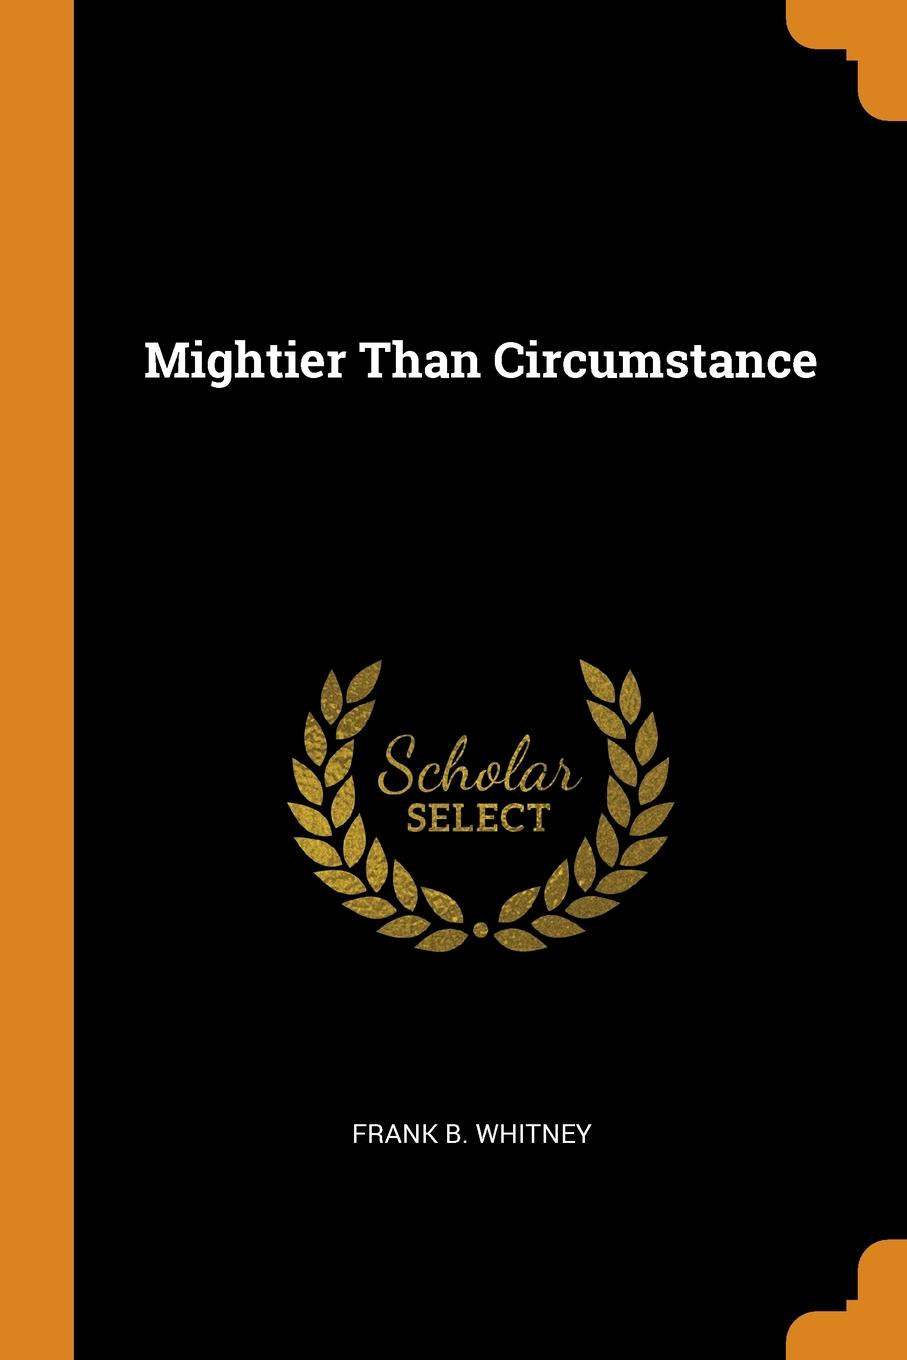 Frank B. Whitney Mightier Than Circumstance pen is mightier than the sword